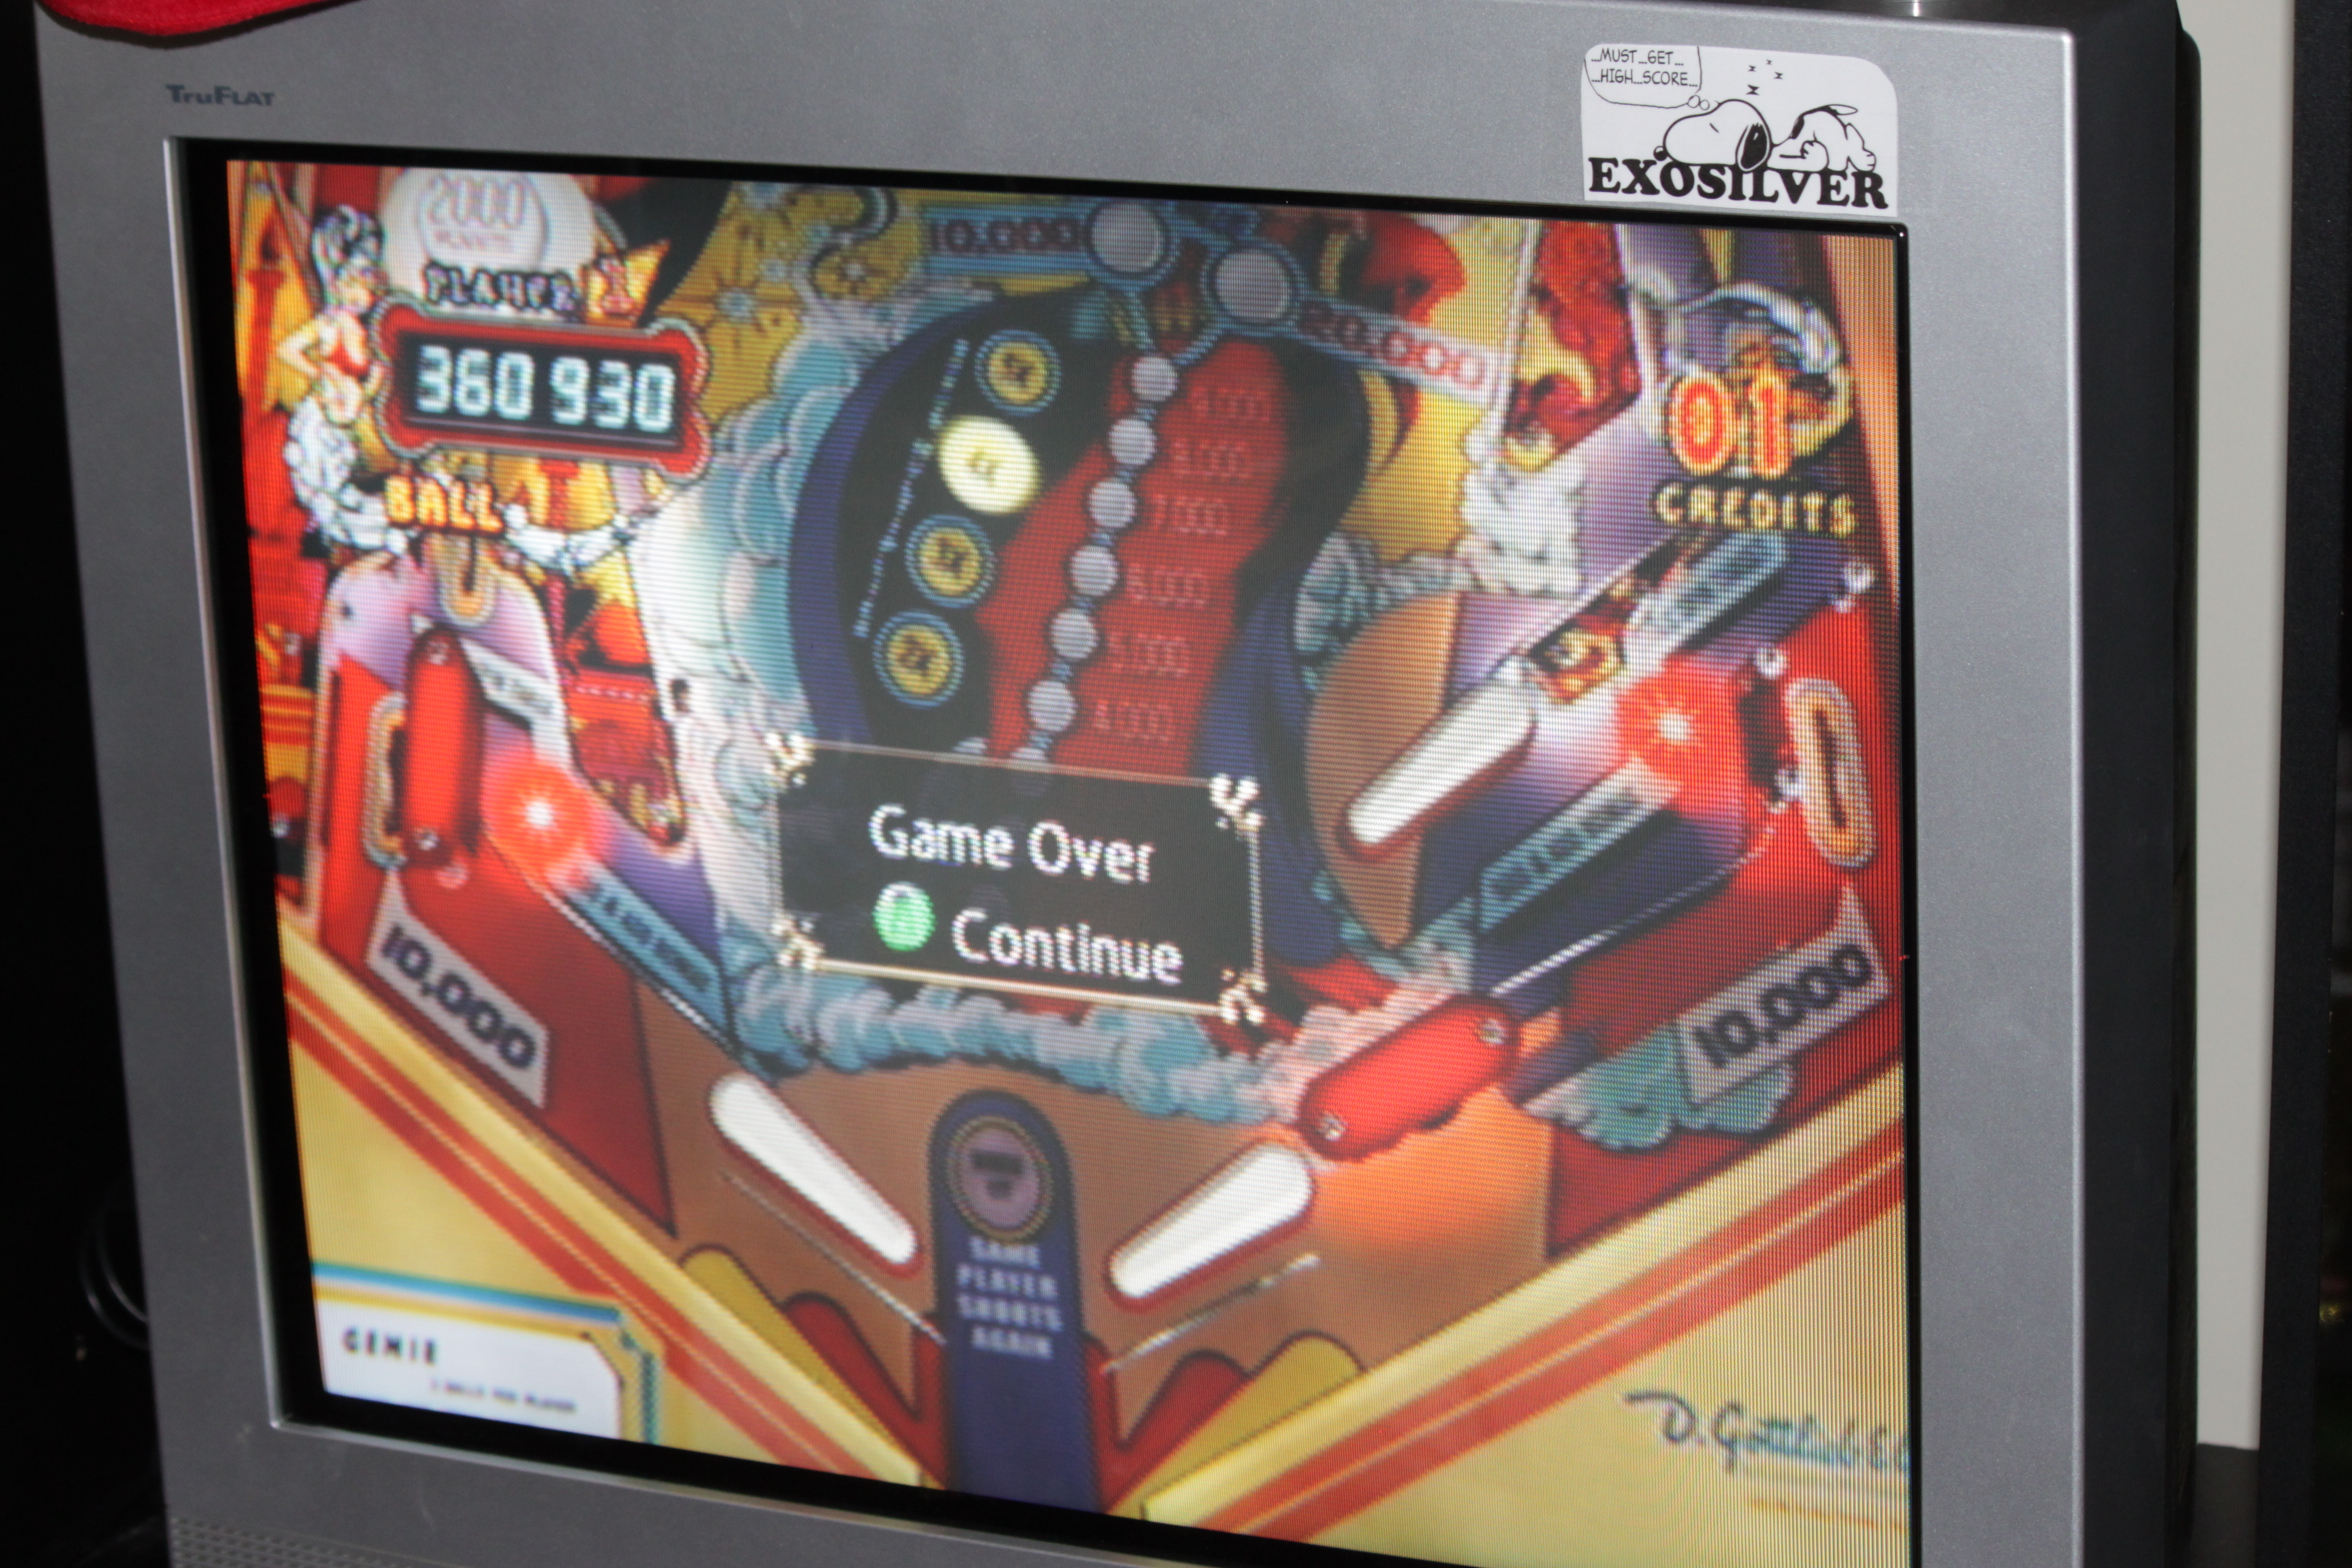 Pinball Hall of Fame: The Gottlieb Collection: Genie 360,930 points